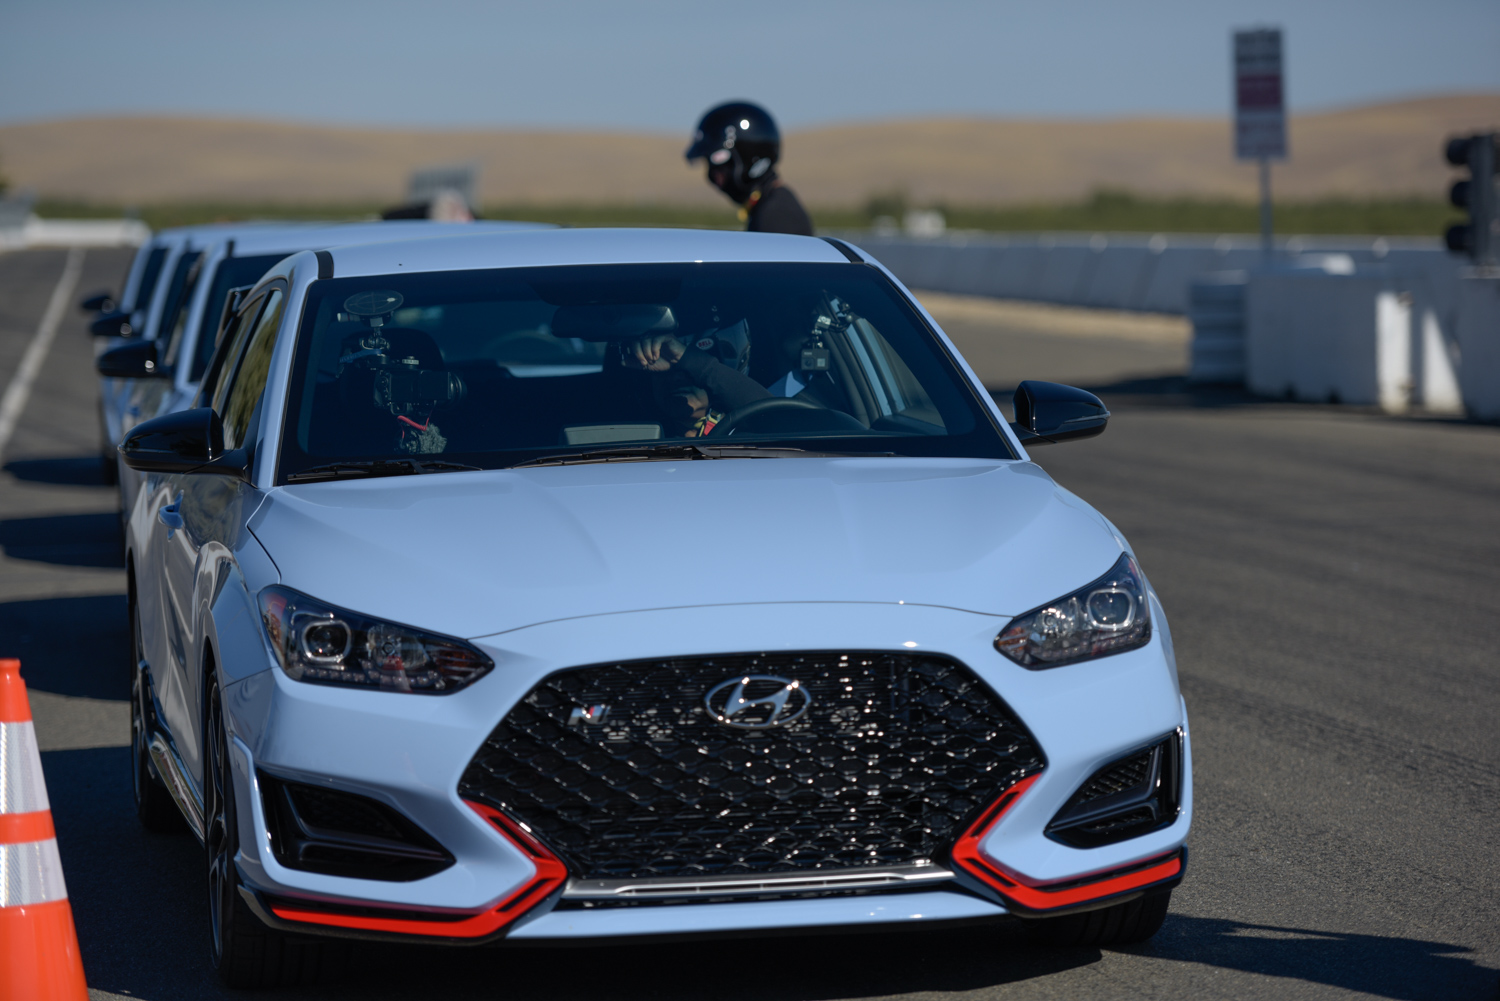 2019 Hyundai Veloster N in the pits